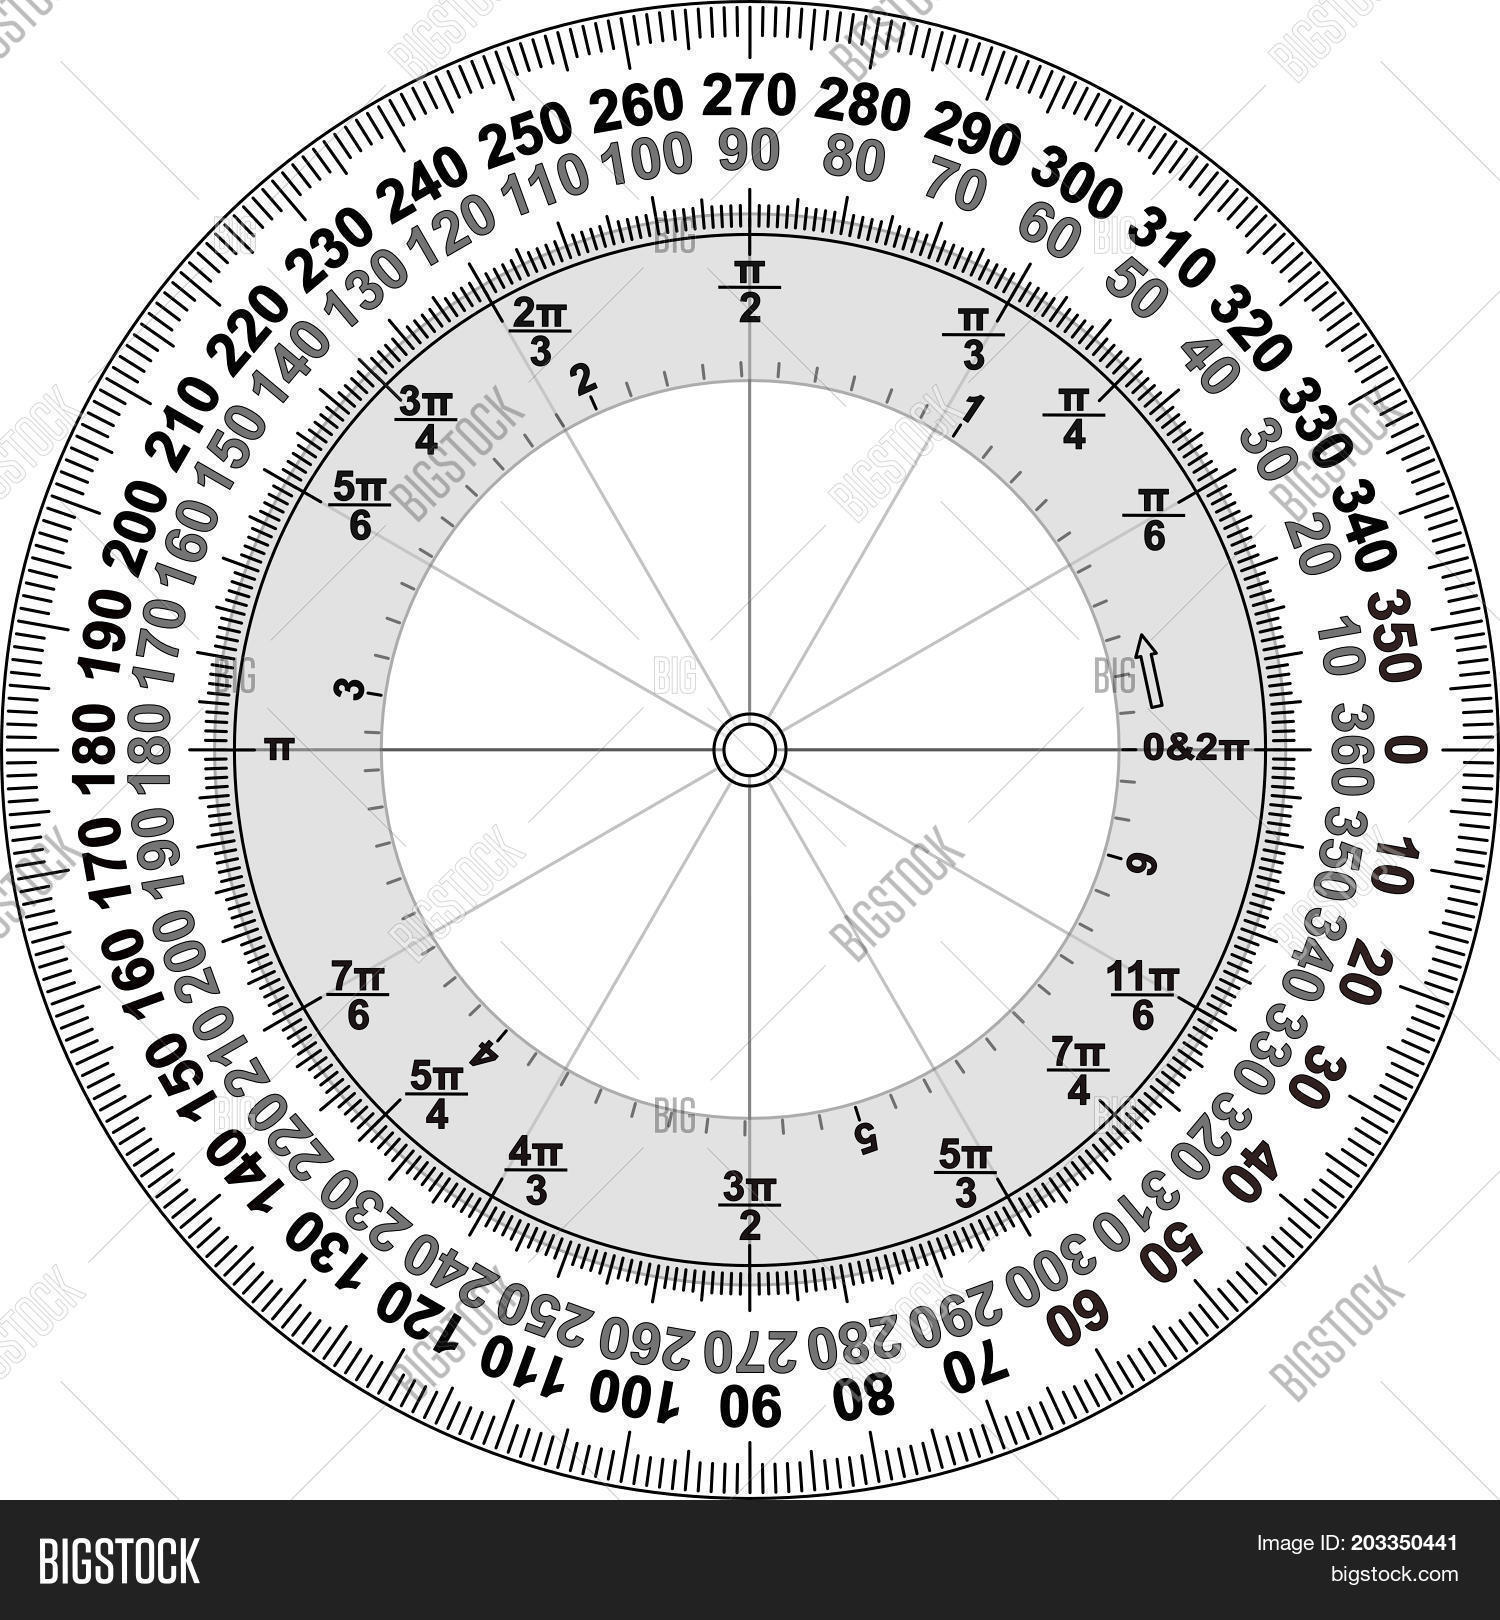 A 360 Degree Protractor Showin